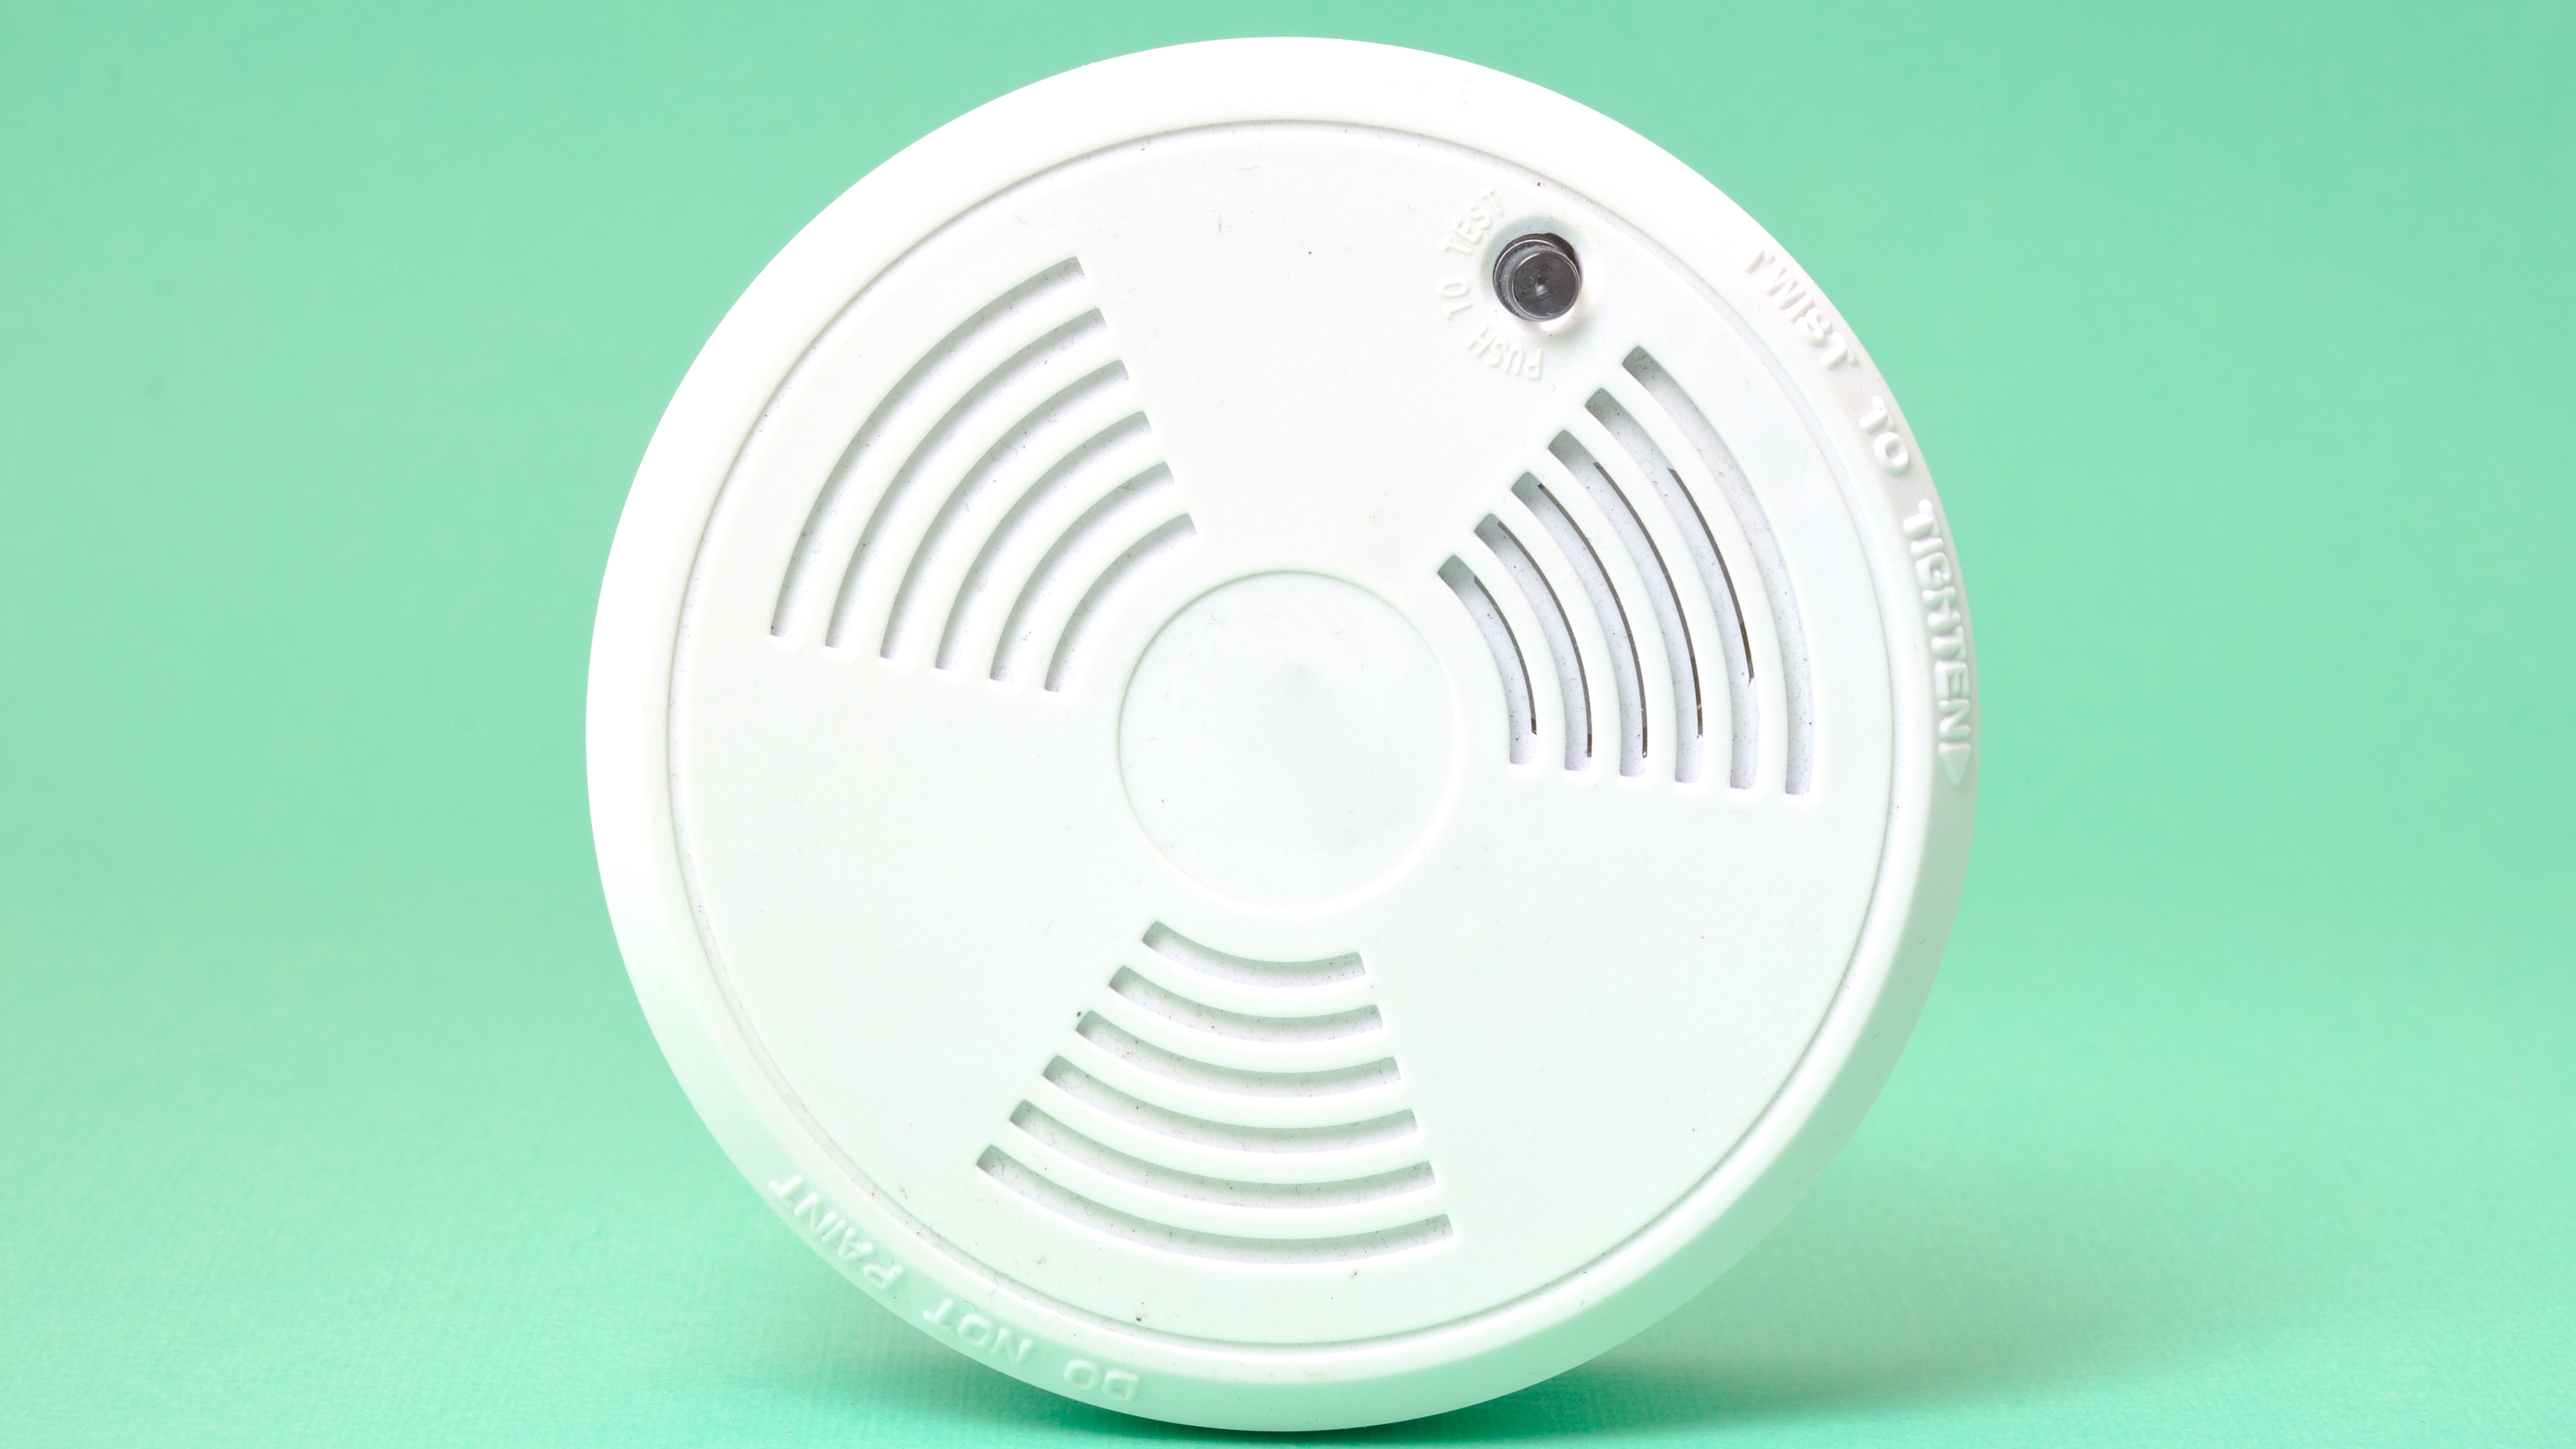 Best Smoke Alarms Shop These Easy To Install Top Rated Smoke Alarms For Better Fire Safety At Home Cnn Underscored